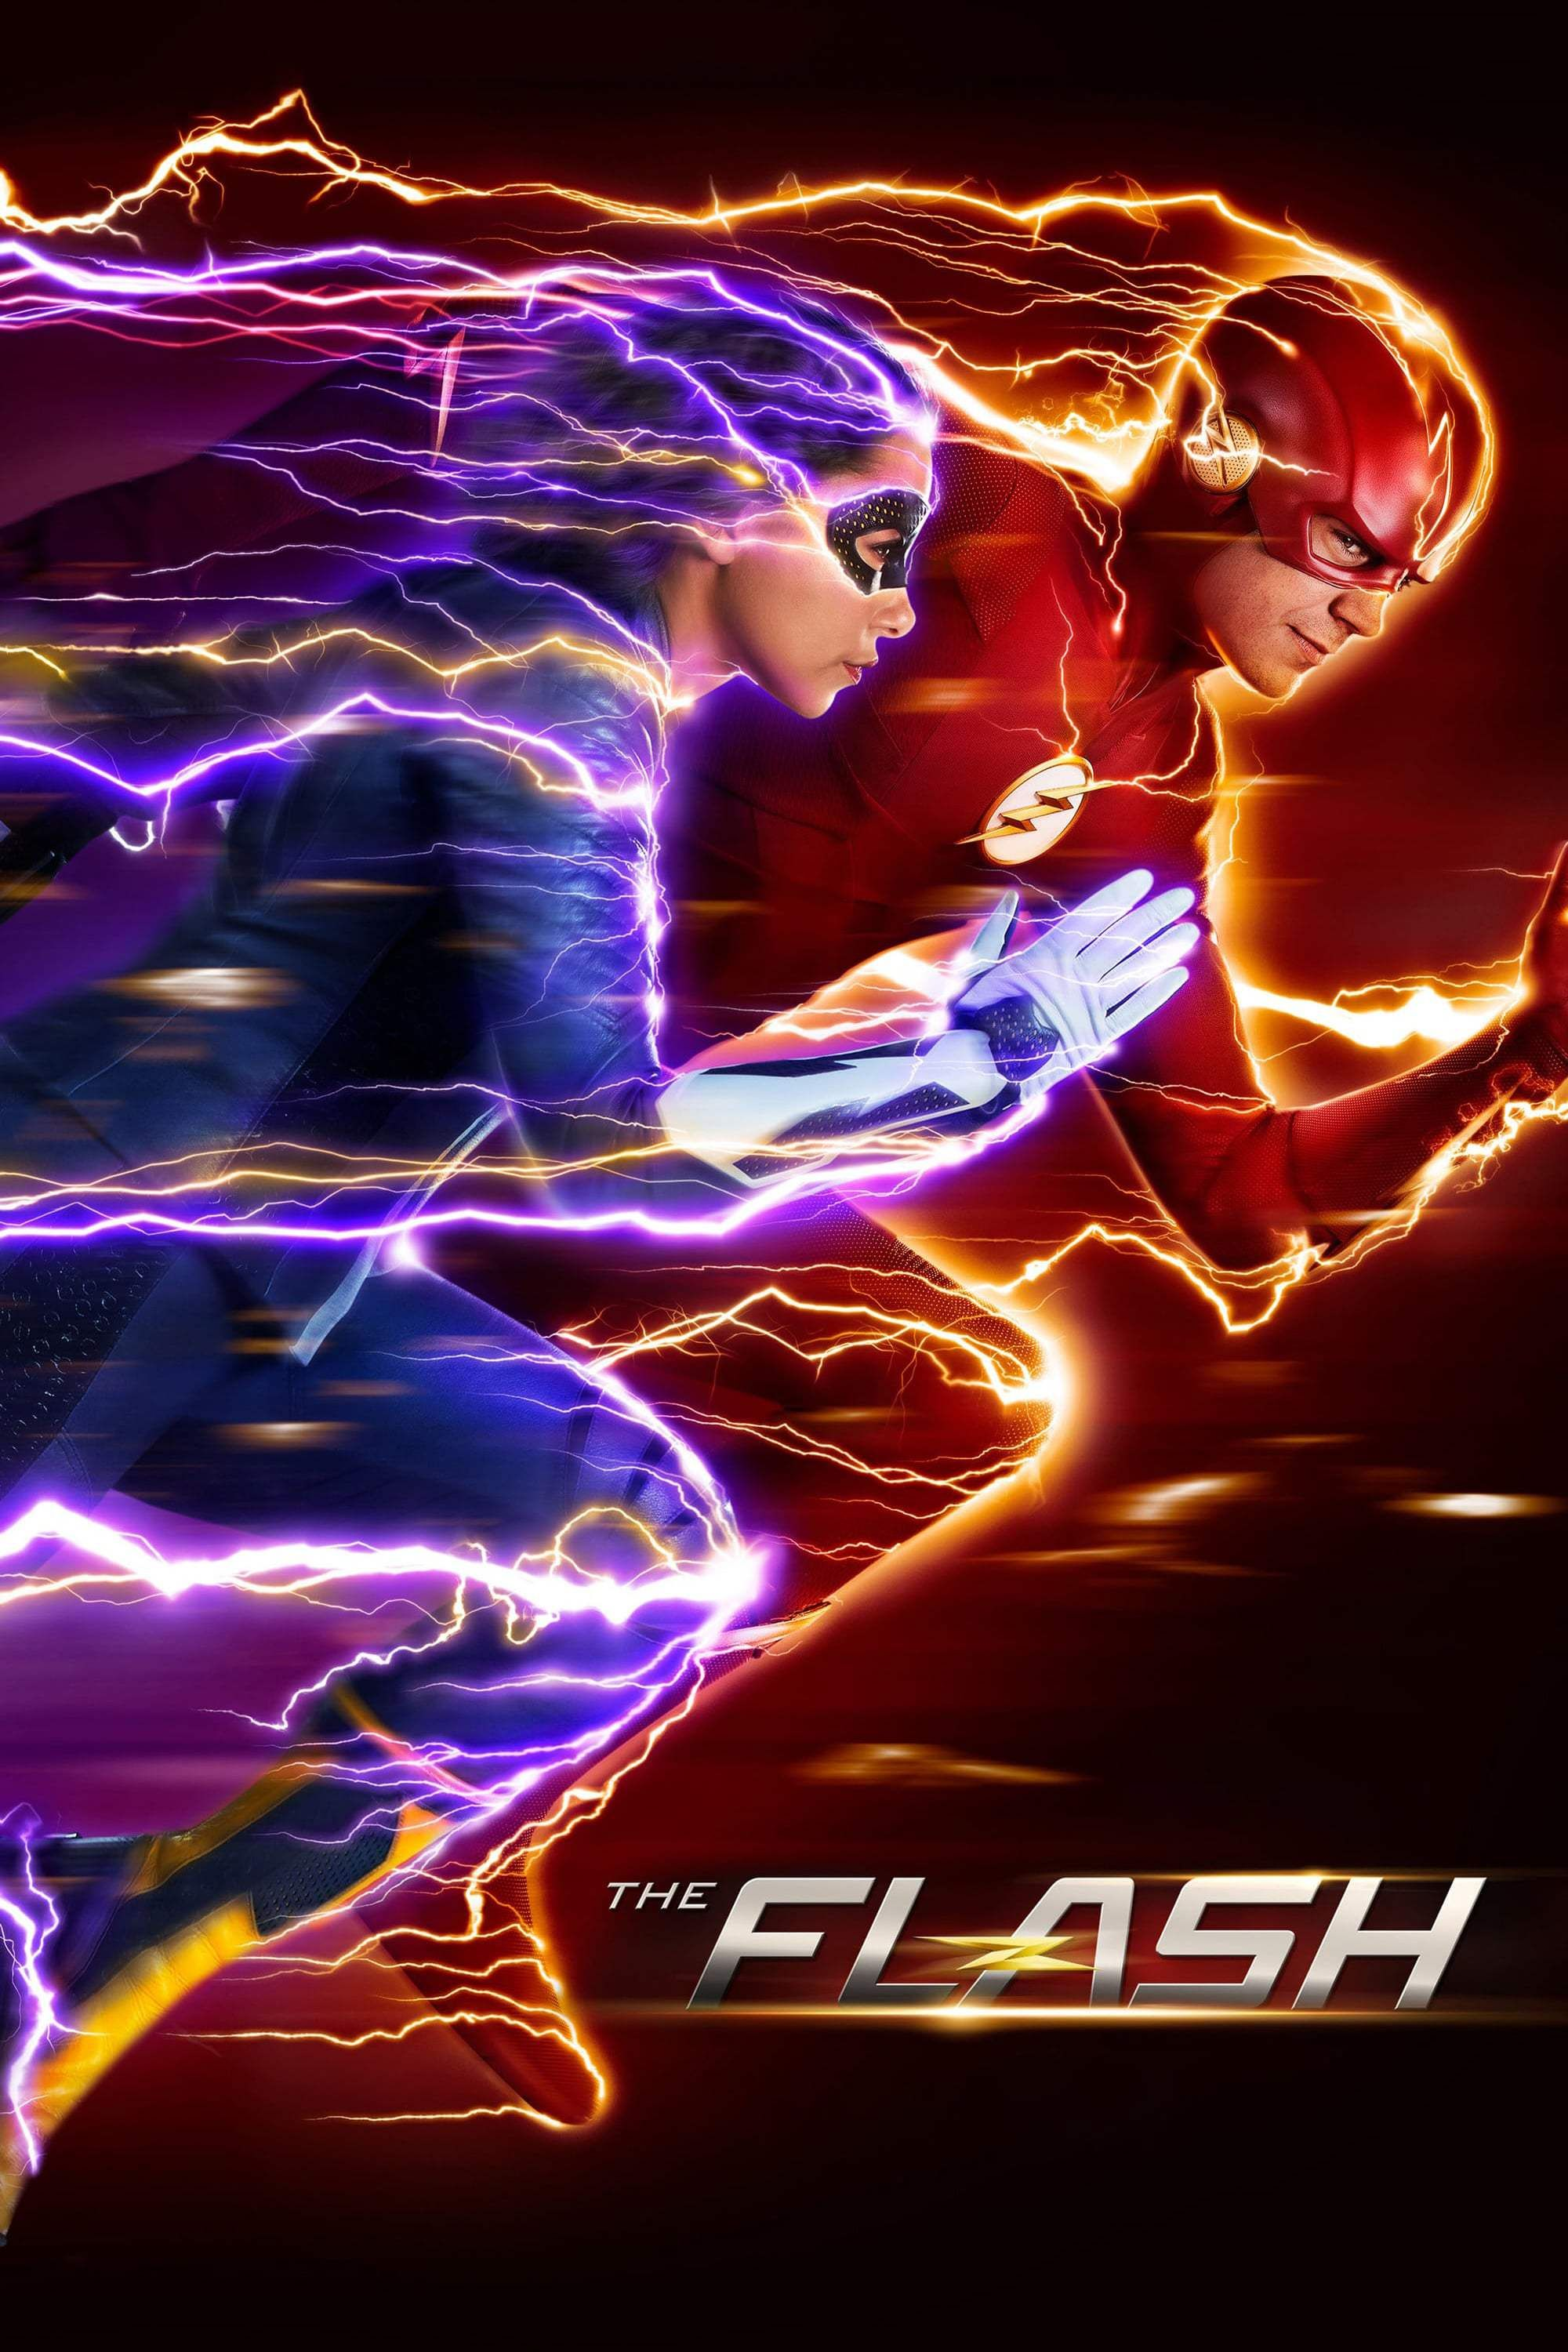 The Flash Full Tv Series Watch Online and download in Hindi